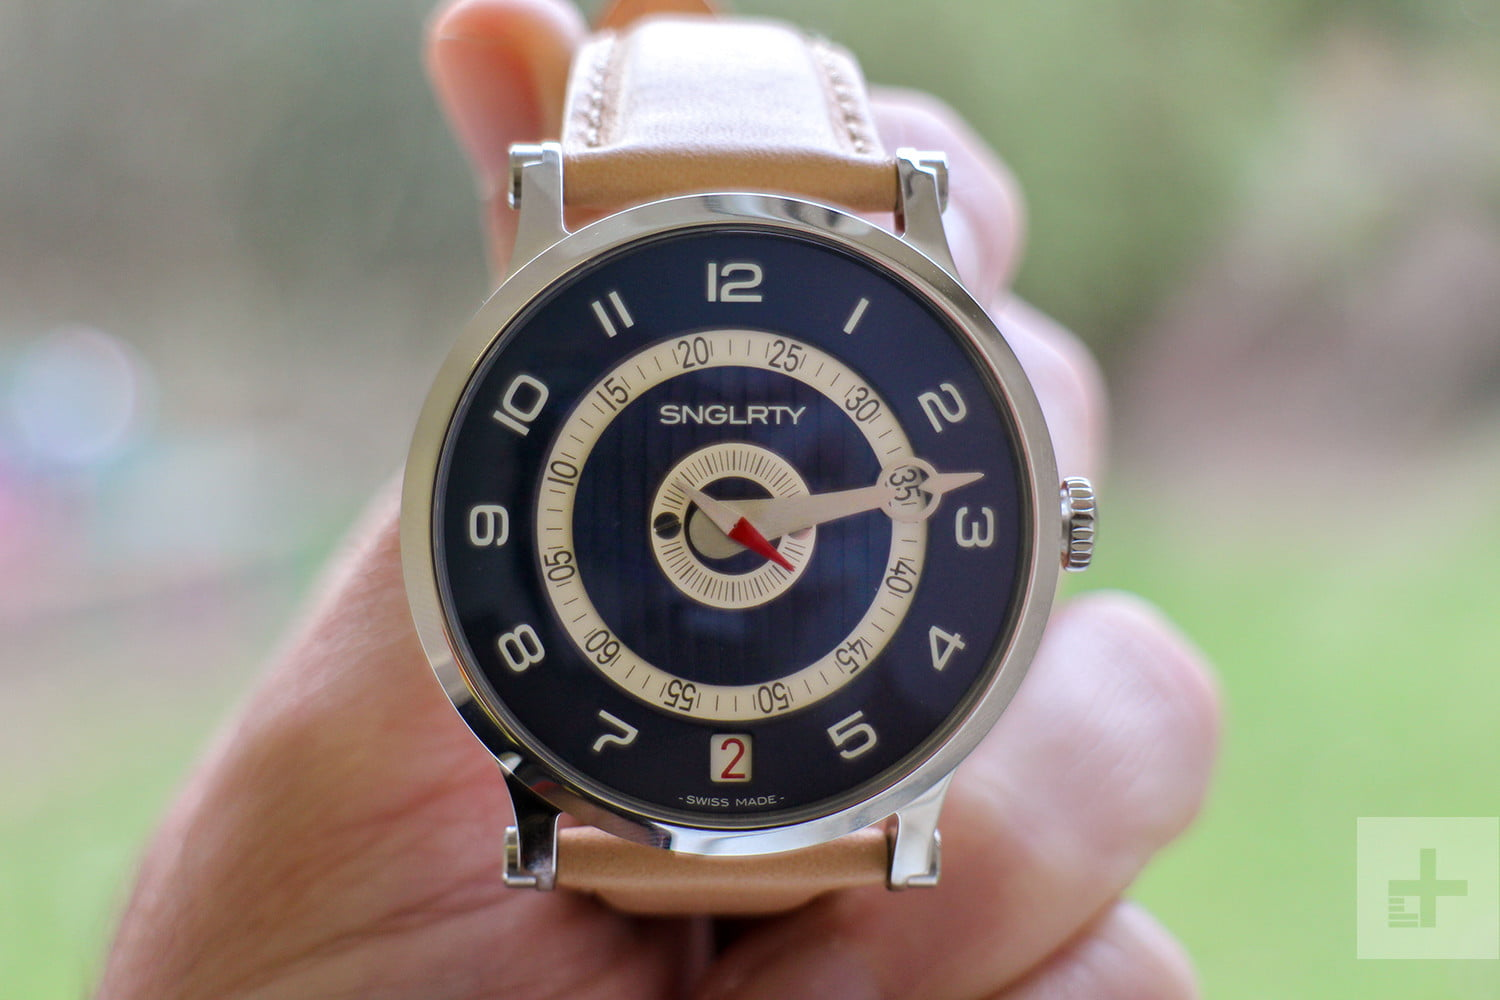 SNGLRTY watch front face